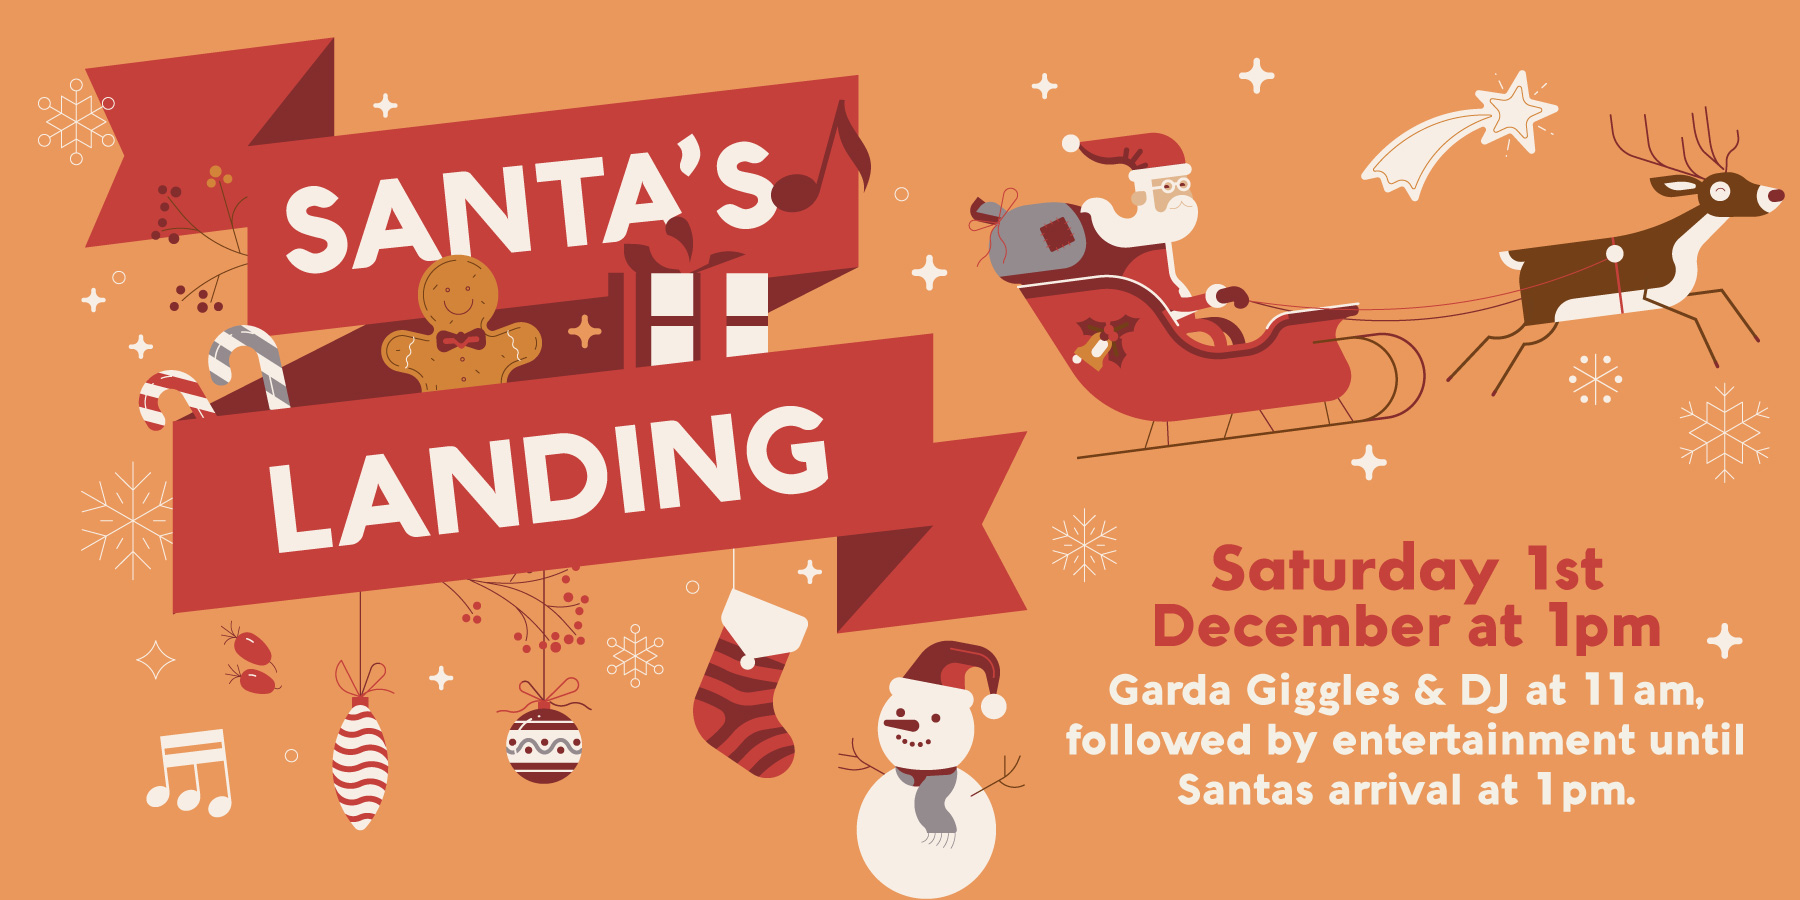 Santa's Landing in CityWest Shopping Centre this Christmas